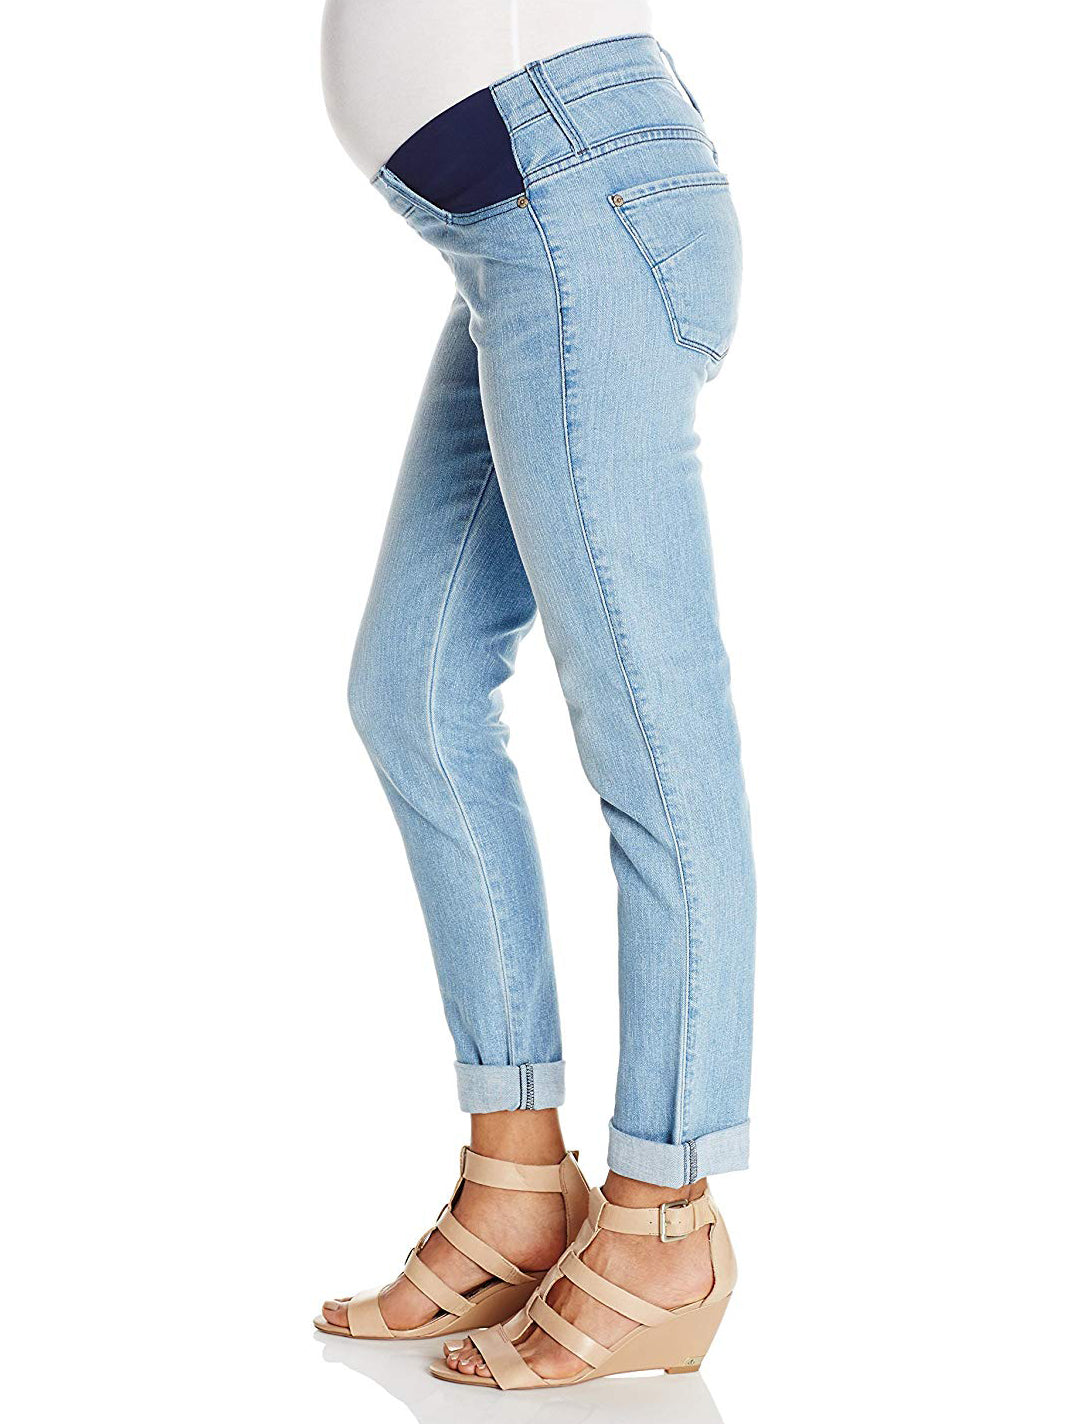 the sale of shoes buy real hot-selling fashion James Jeans Neo Beau Maternity Jean - Joy Ride